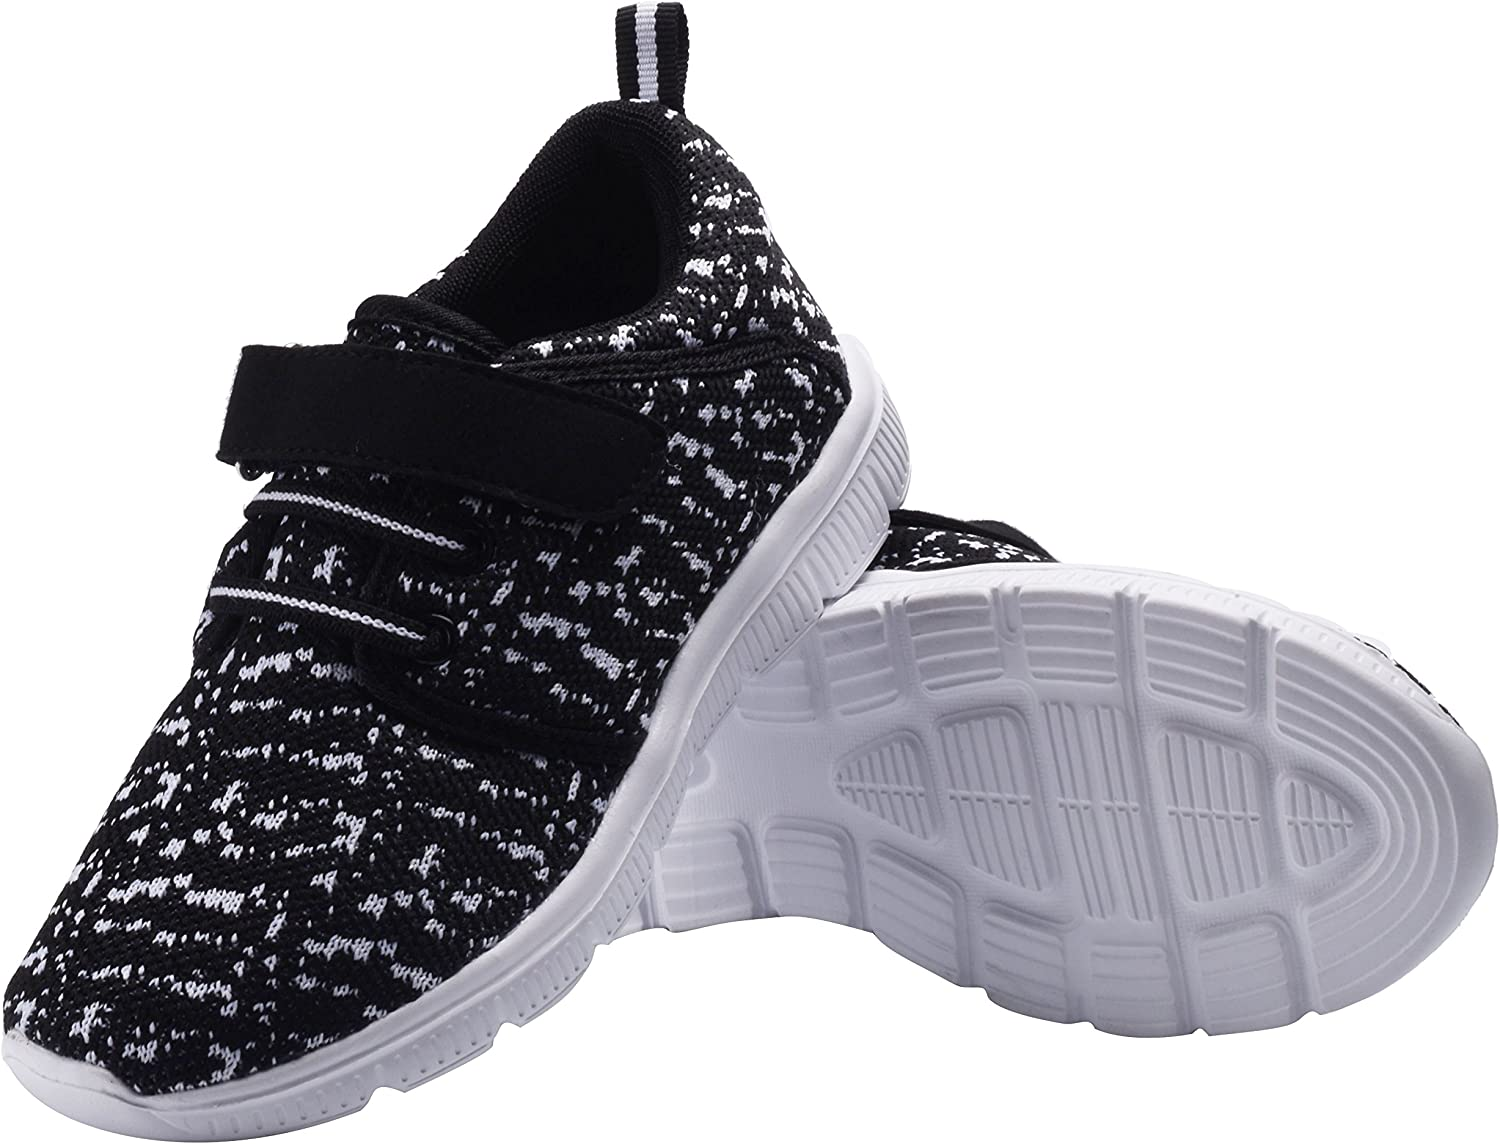 DEDU MusBema Kids Casual Lightweight Breathable Sneakers Easy Walk Sport Shoes for Boys Girls